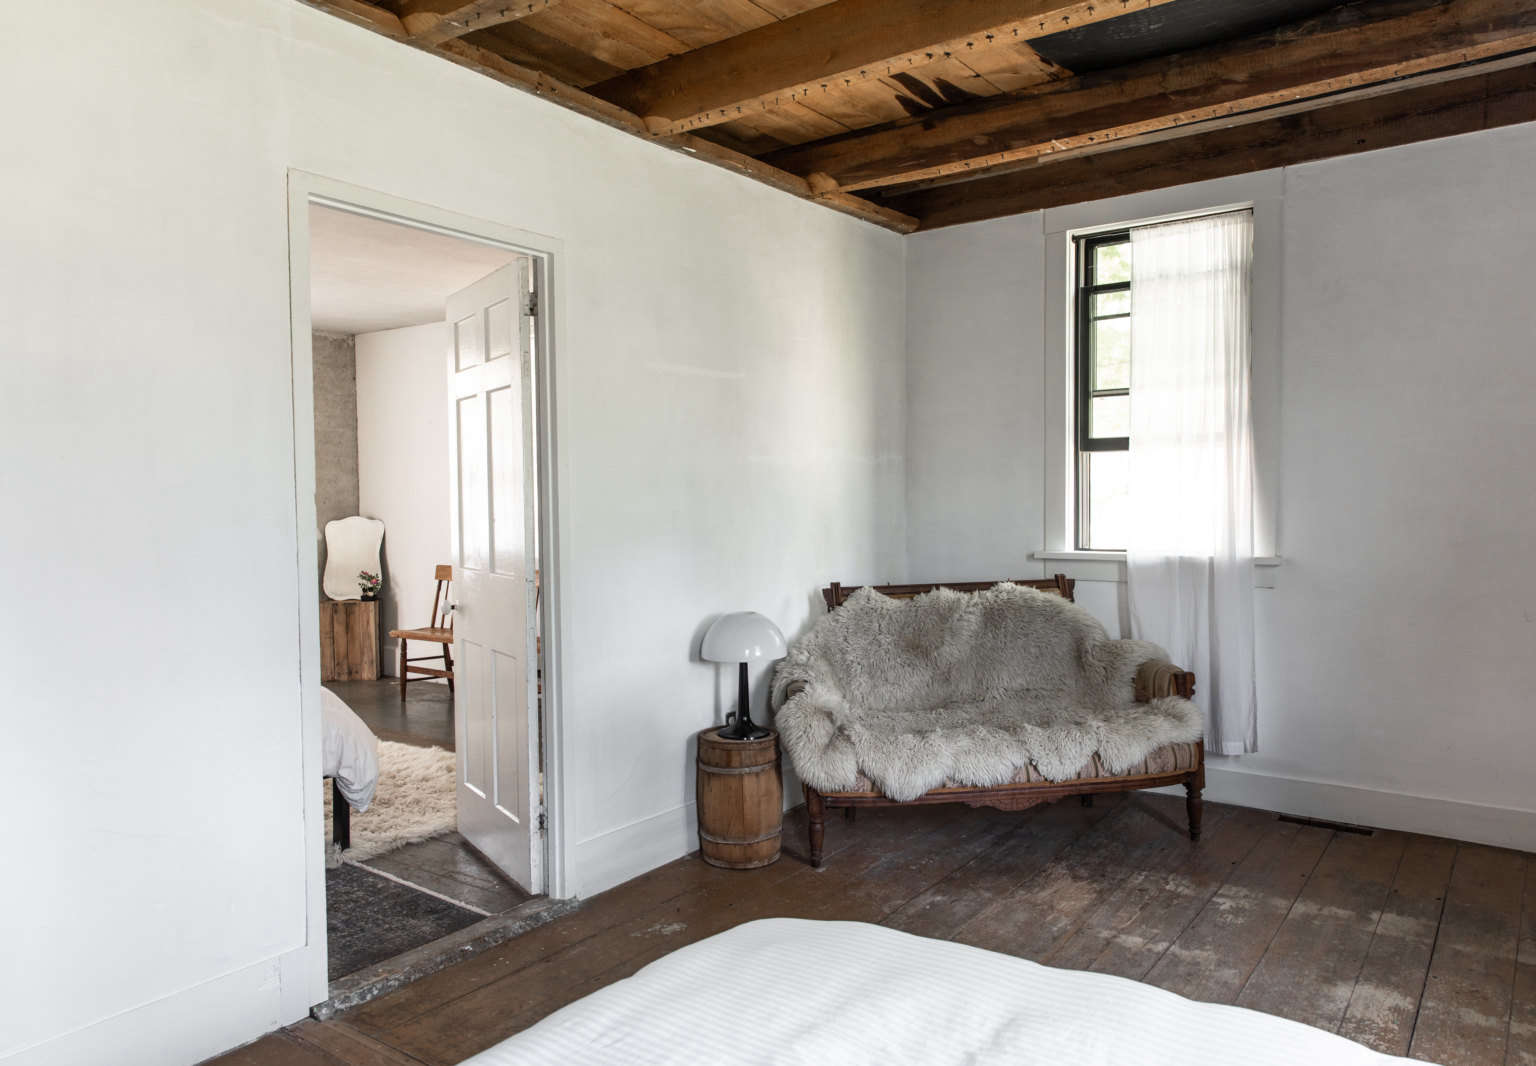 7 Things Nobody Tells You About Renovating an Old Farmhouse